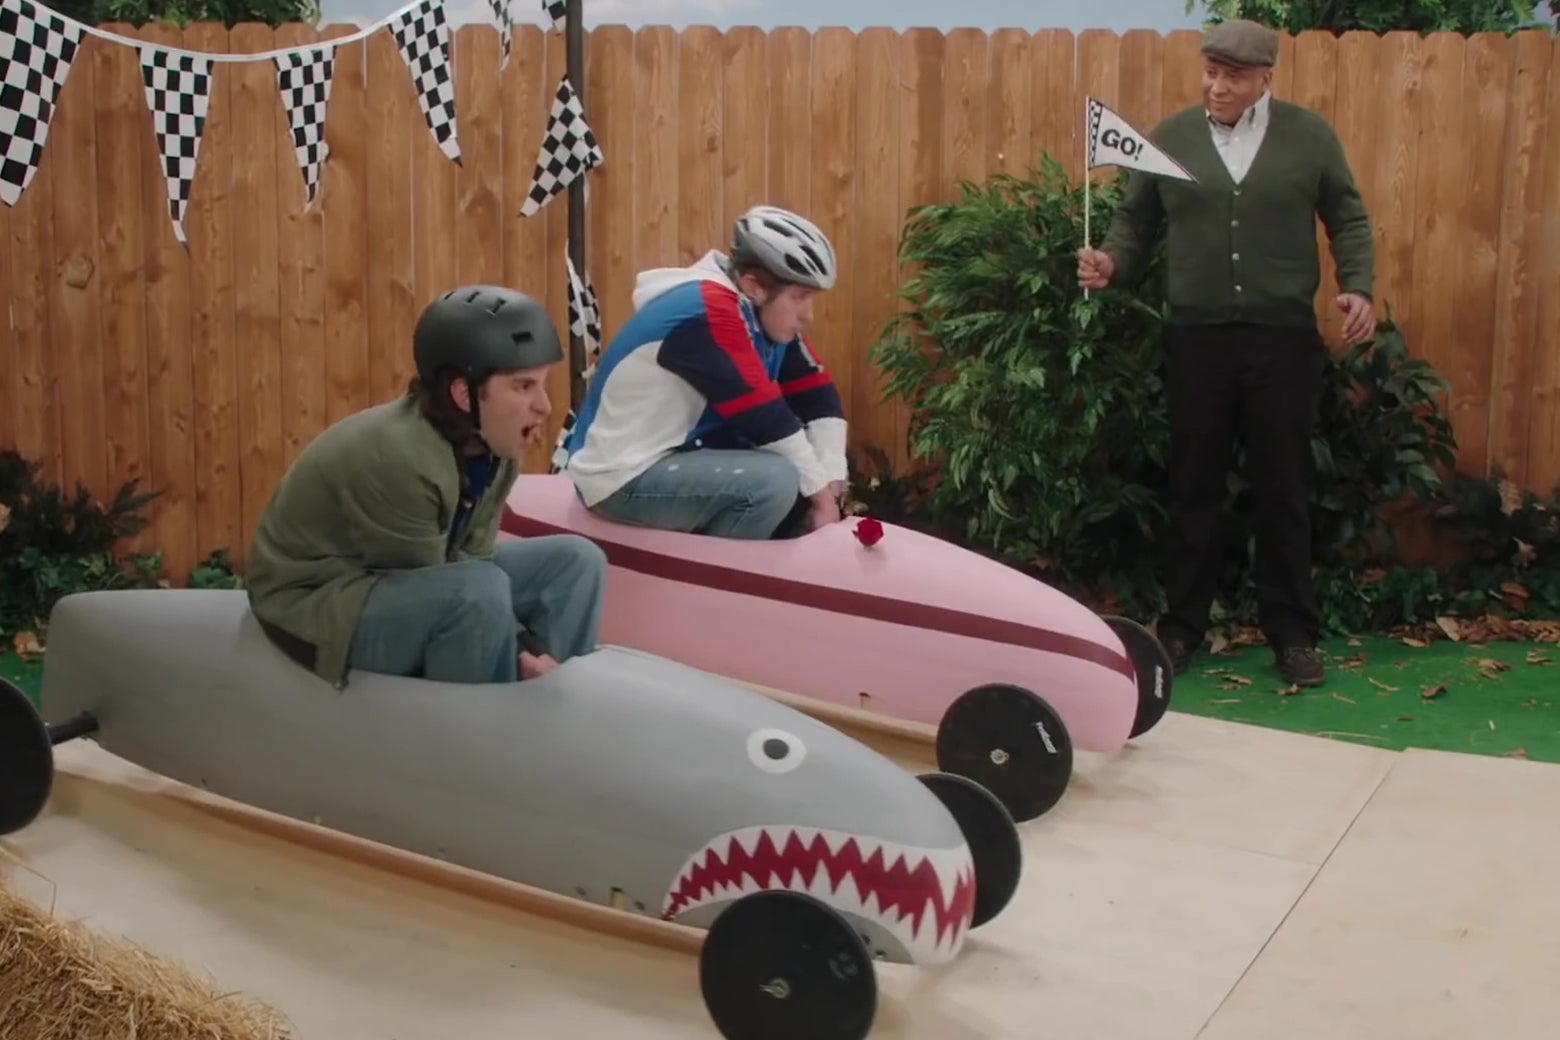 Kyle Mooney and Beck Bennett riding downhill derby racers.